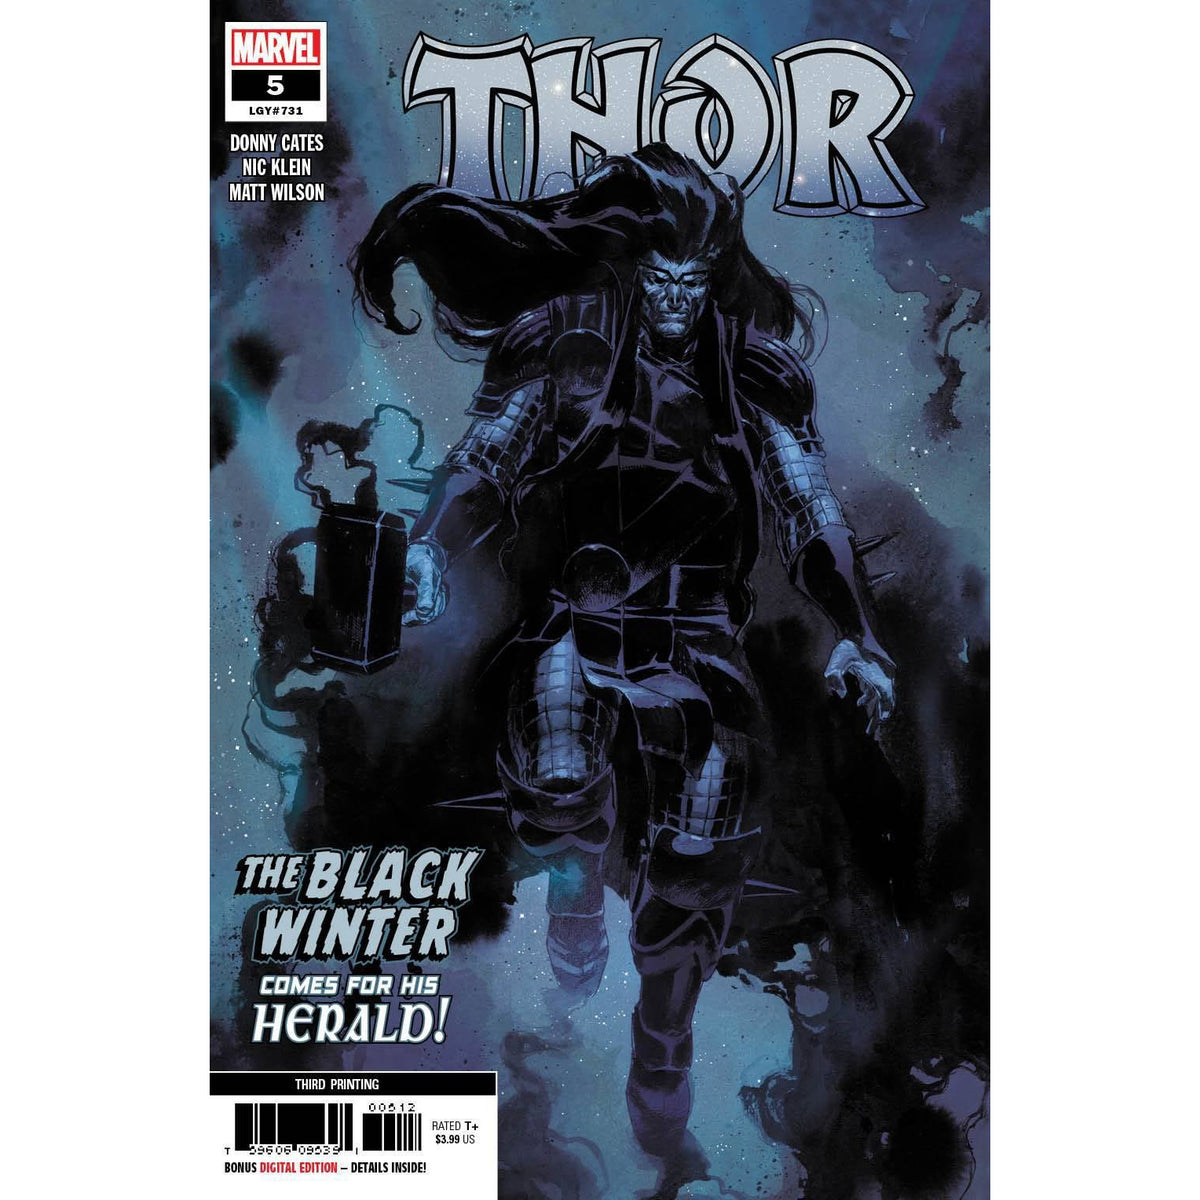 THOR #5 3RD PRINTING KLEIN VARIANT COVER